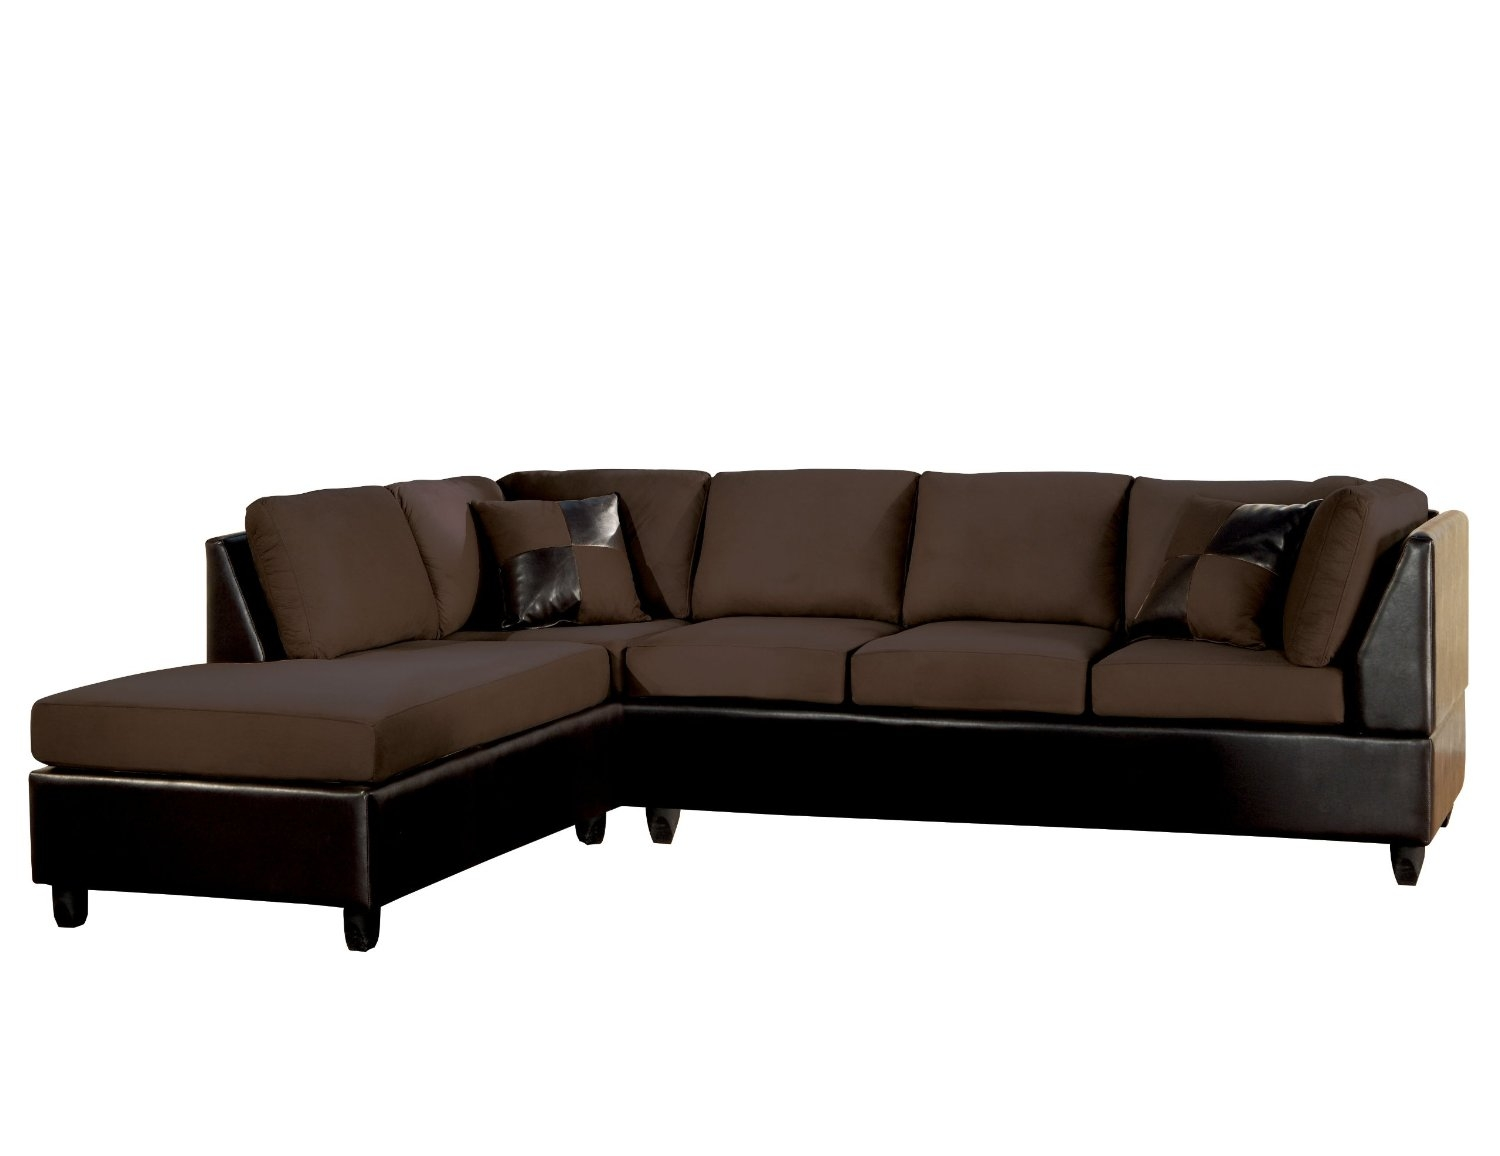 Small Compact Couch Folding Sofas Beds And For Small Spaces In Compact Sectional Sofas (Image 14 of 15)